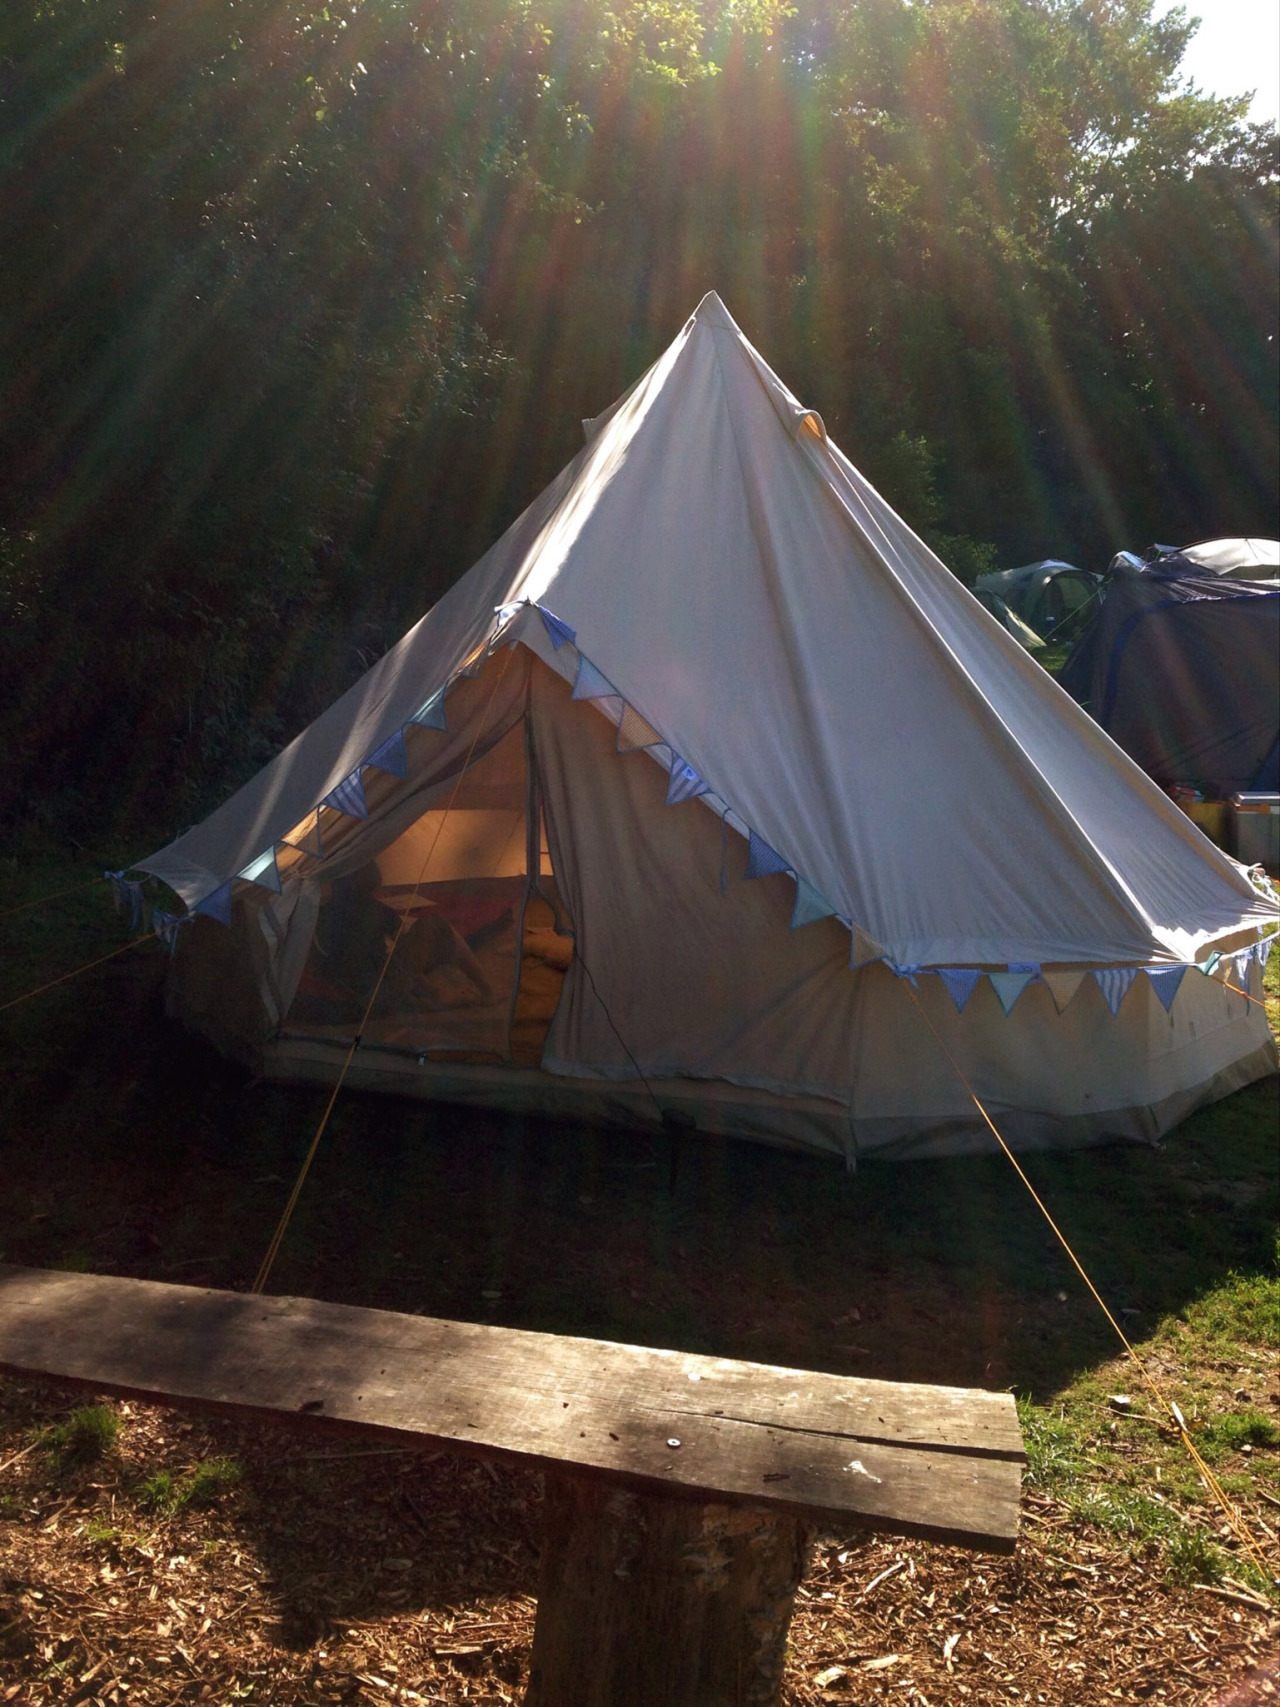 Campervan on one side, bell tent on the other, fire pit in the middle  - what's not to love?